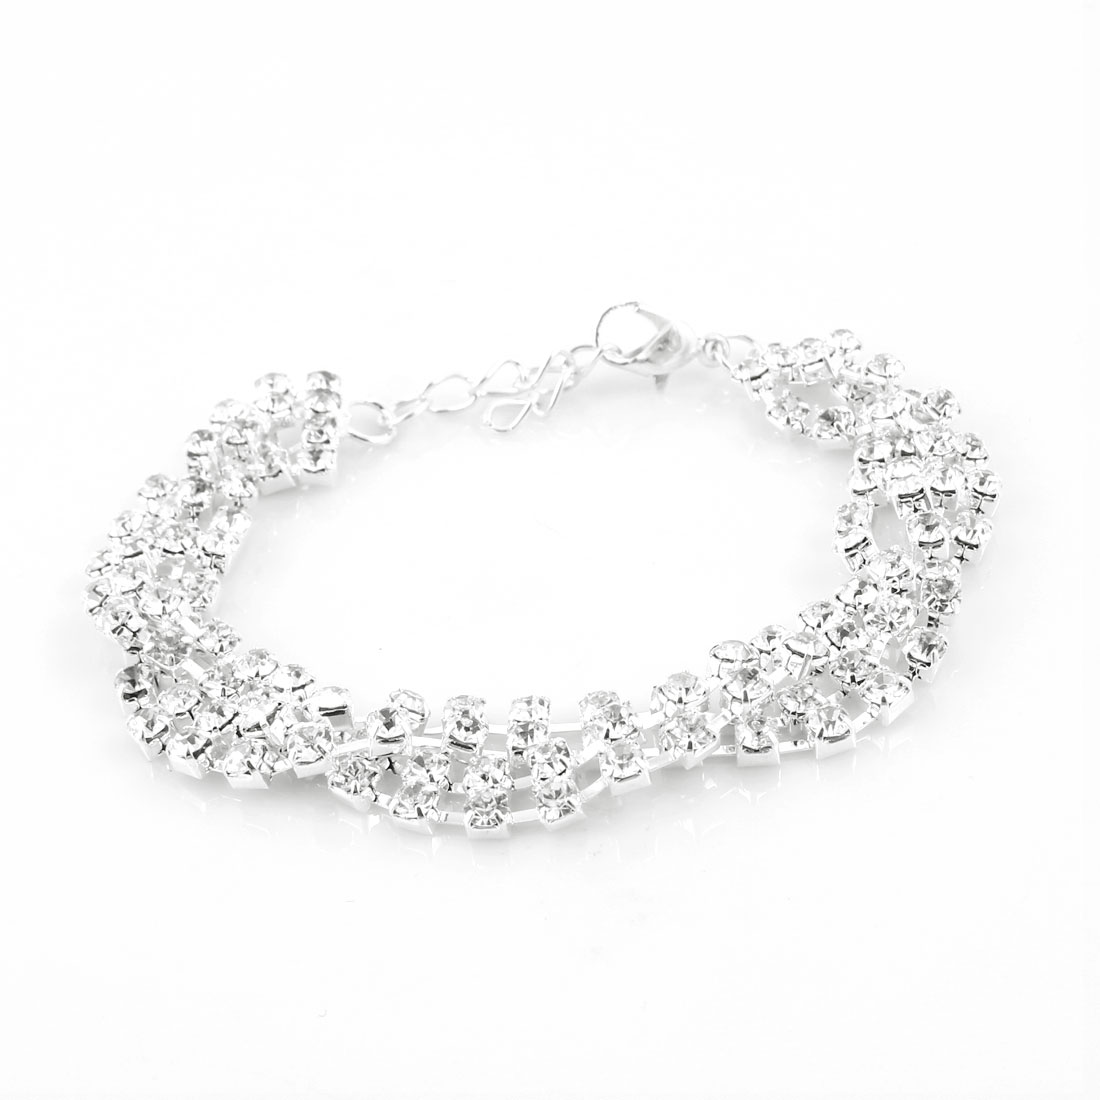 Lady Bling Rhinestones Chain Lobster Clasp Wrist Bracelet Bangle Silver Tone